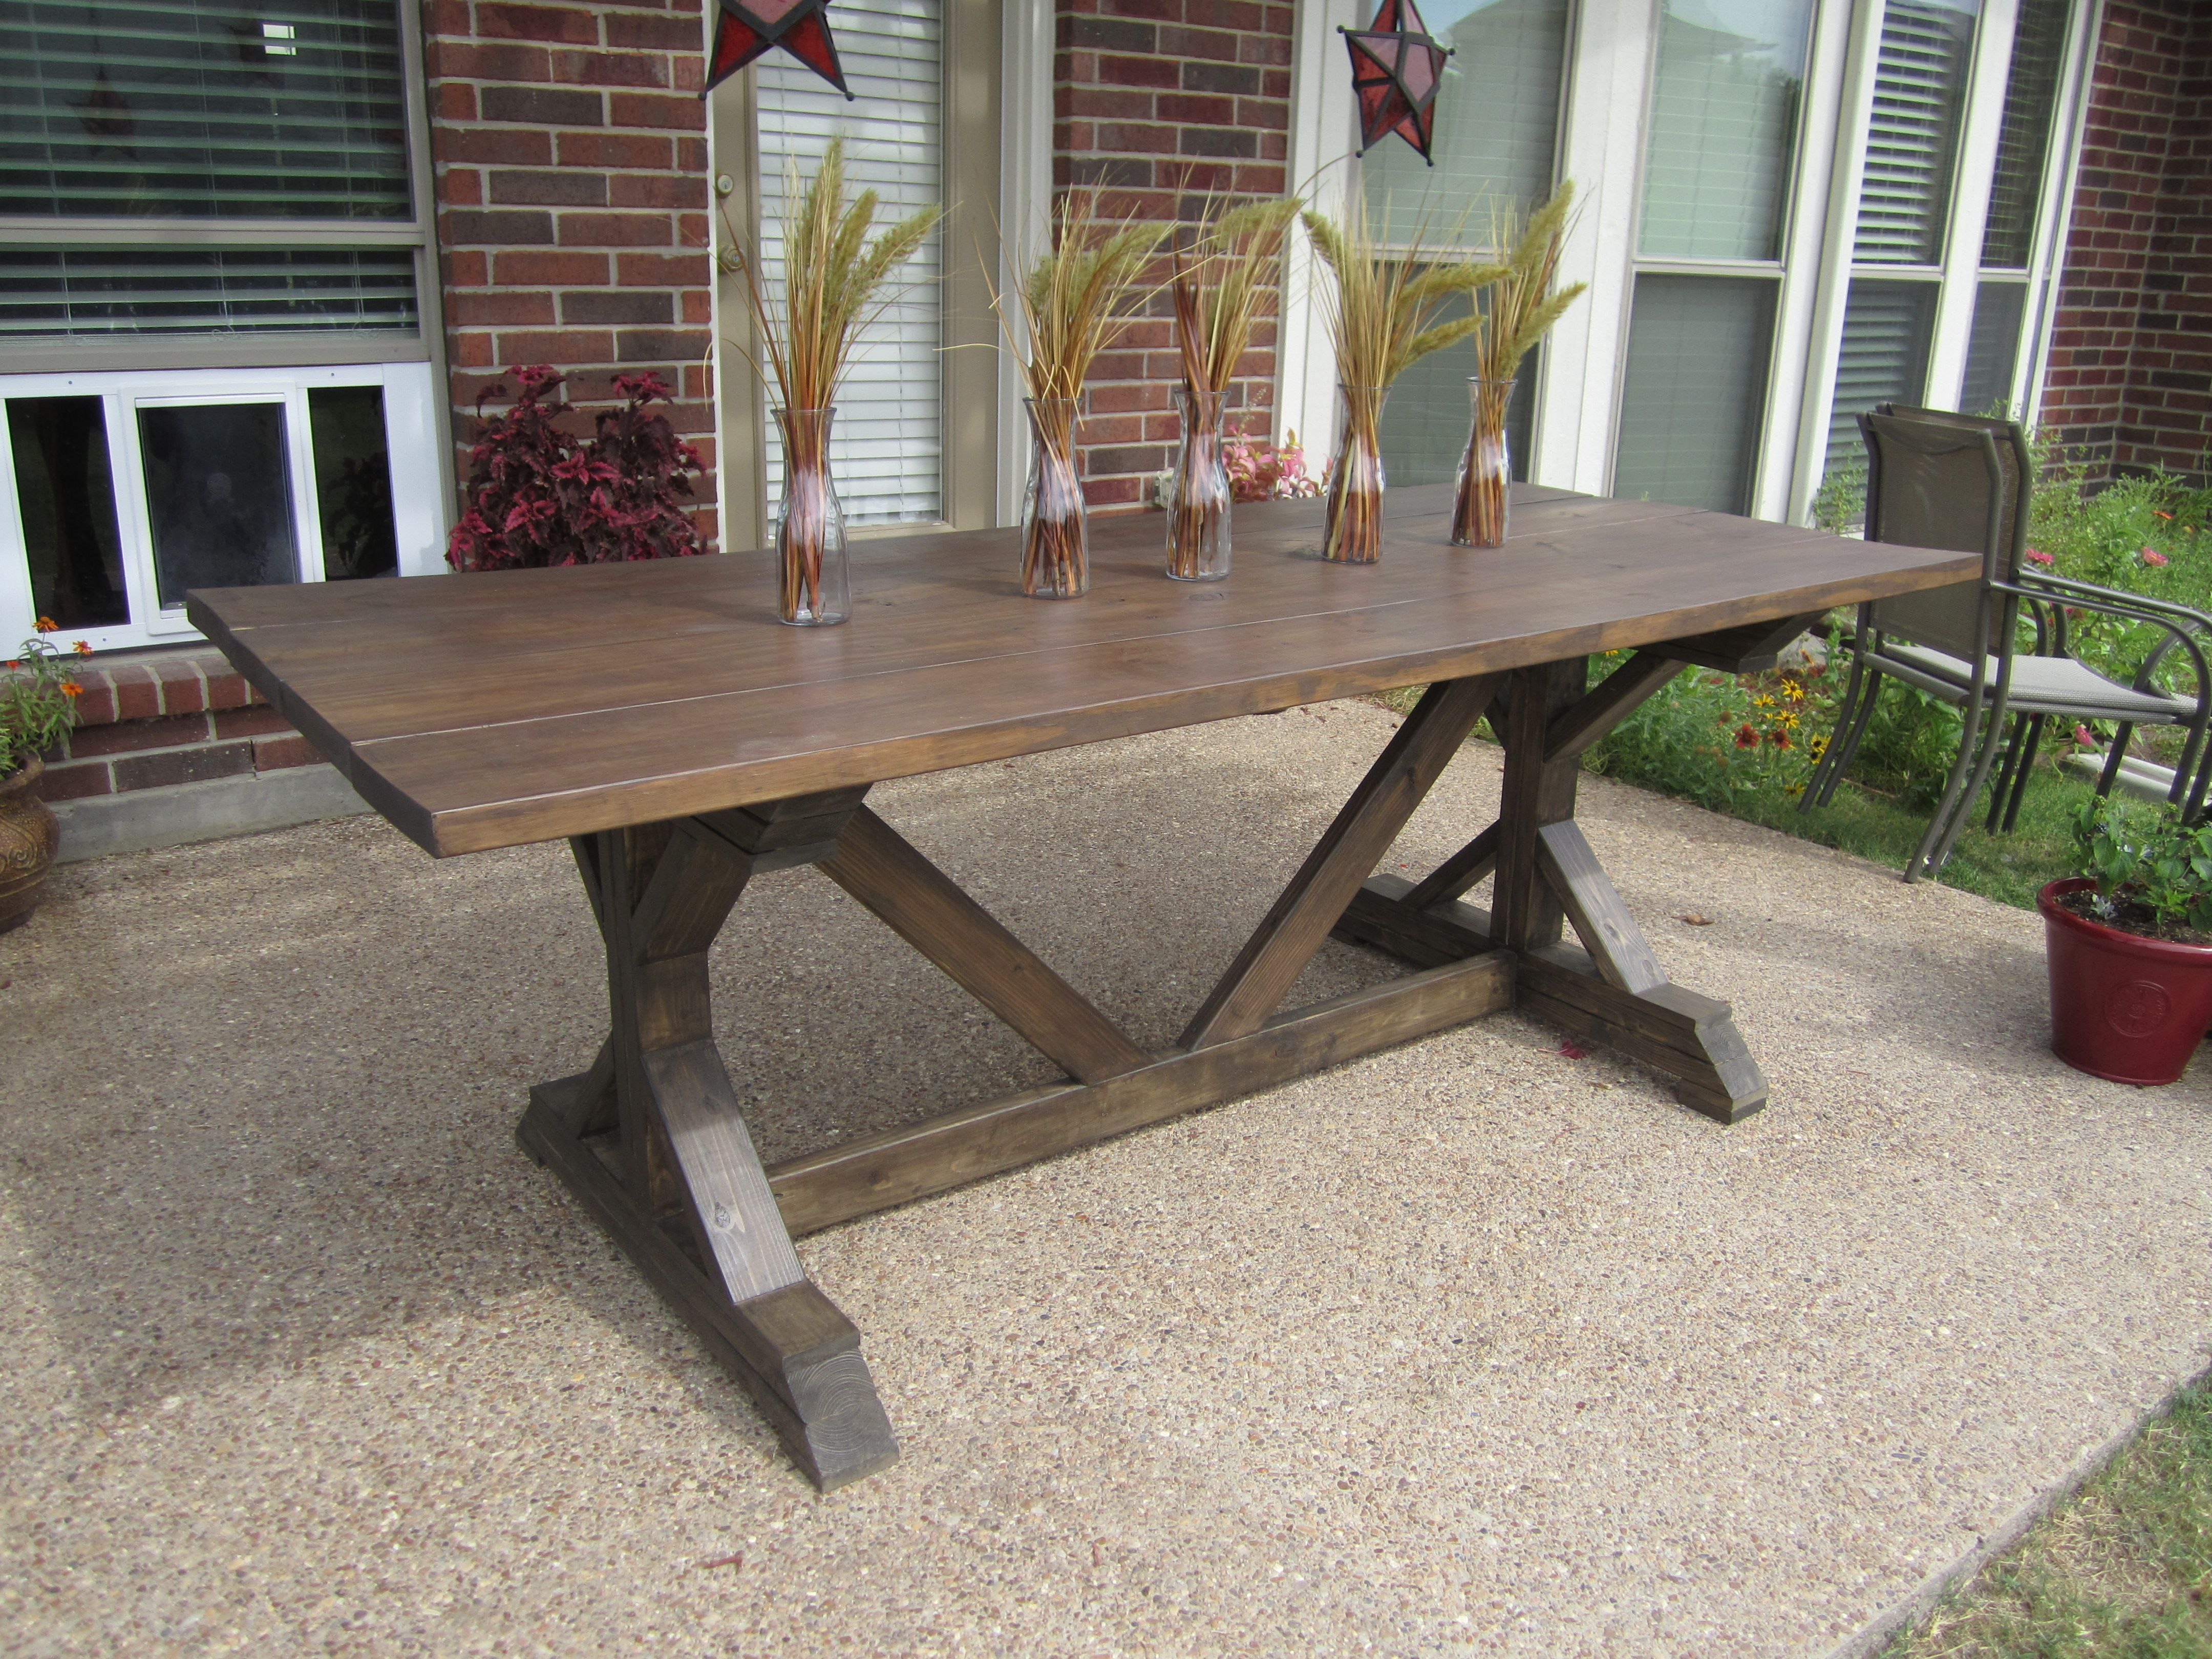 fancy x farmhouse table do it yourself home projects from ana white diy farmhouse table on farmhouse kitchen table diy id=36778